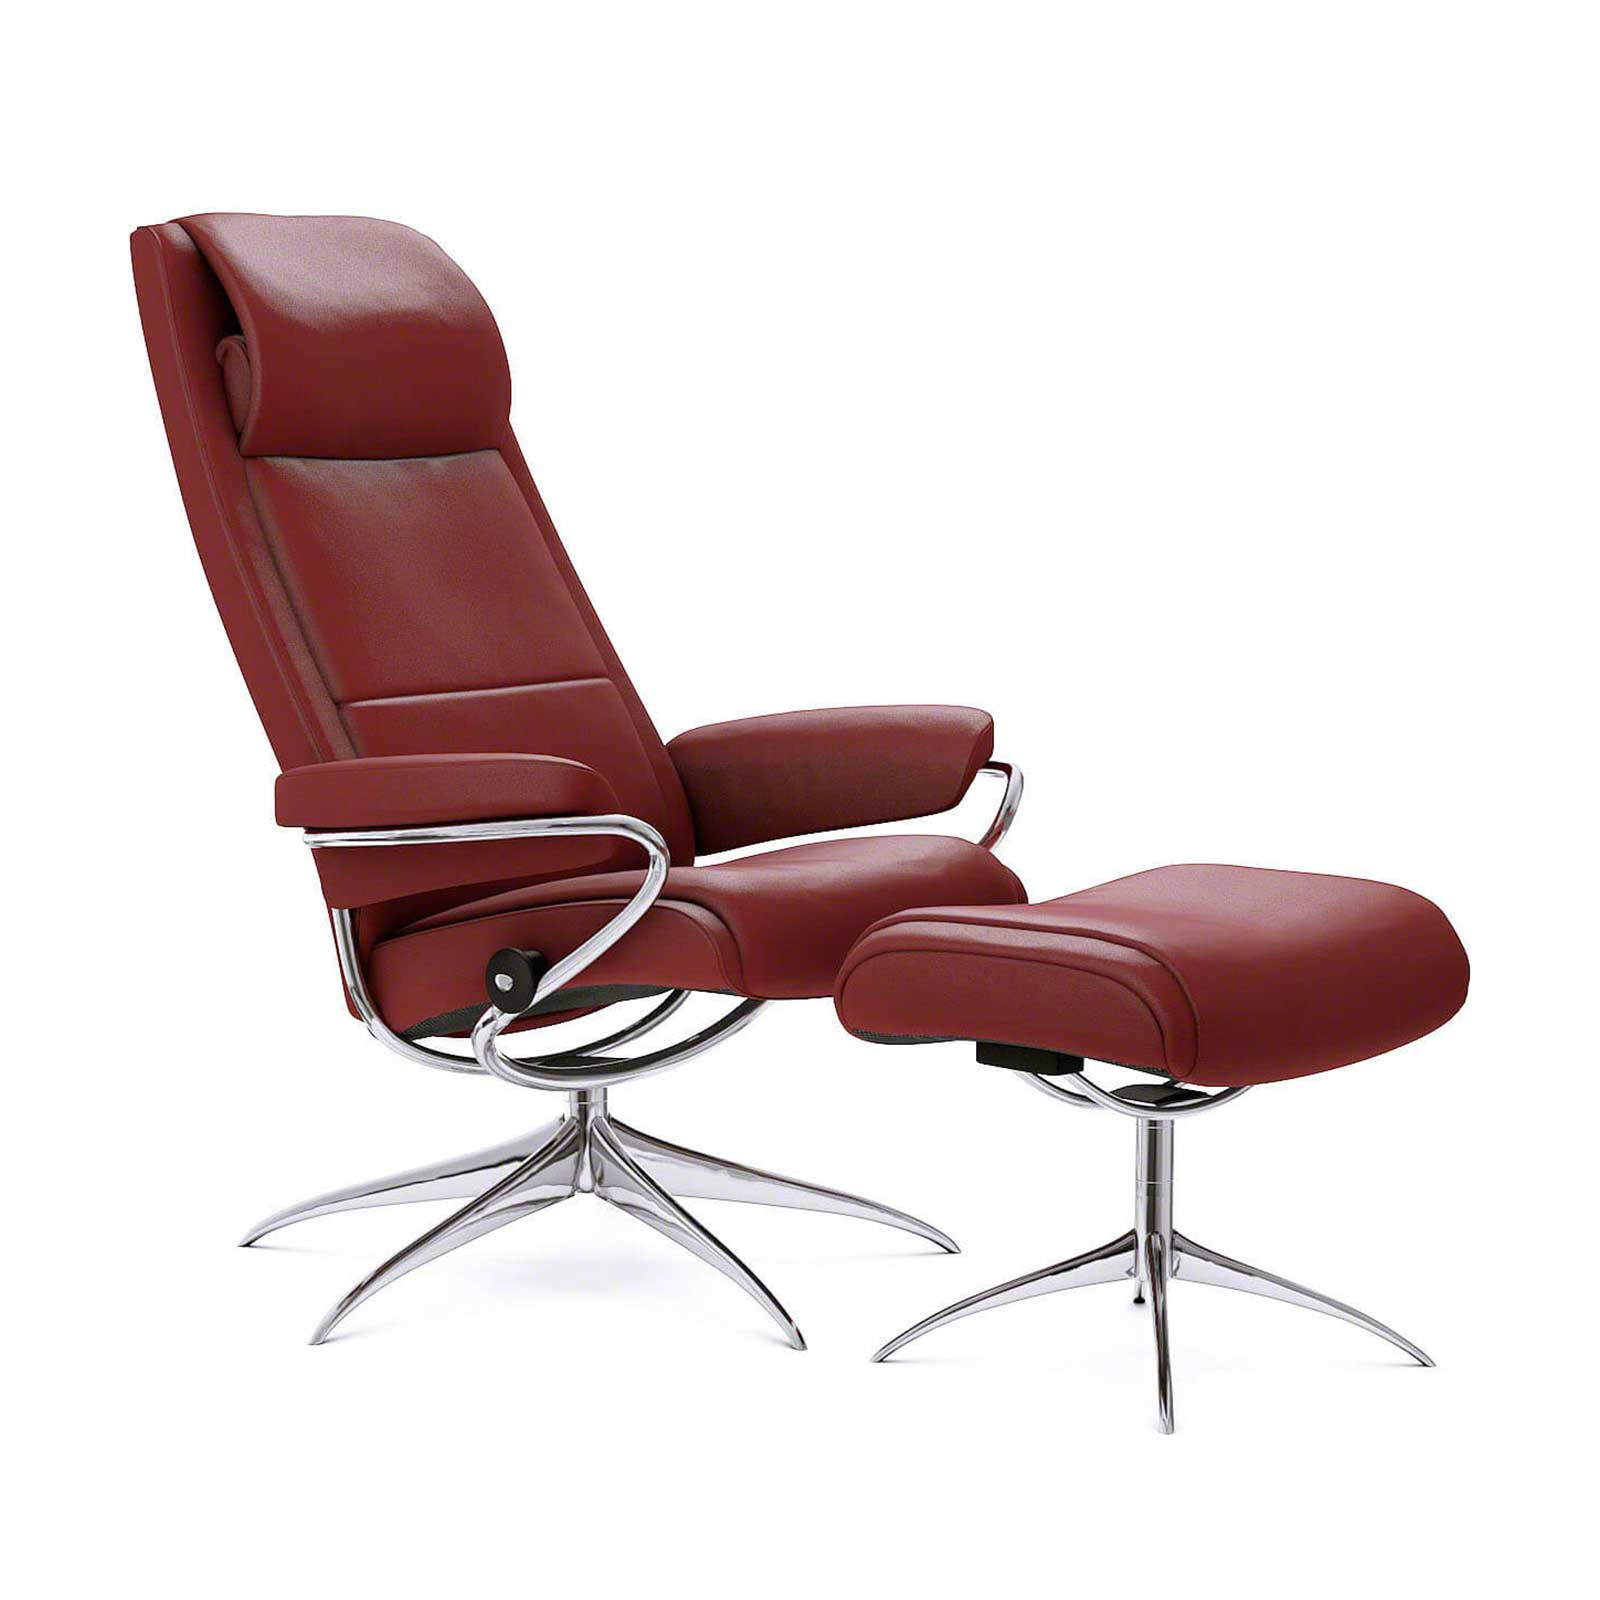 Test Stressless Sessel Relaxsessel Stressless Test